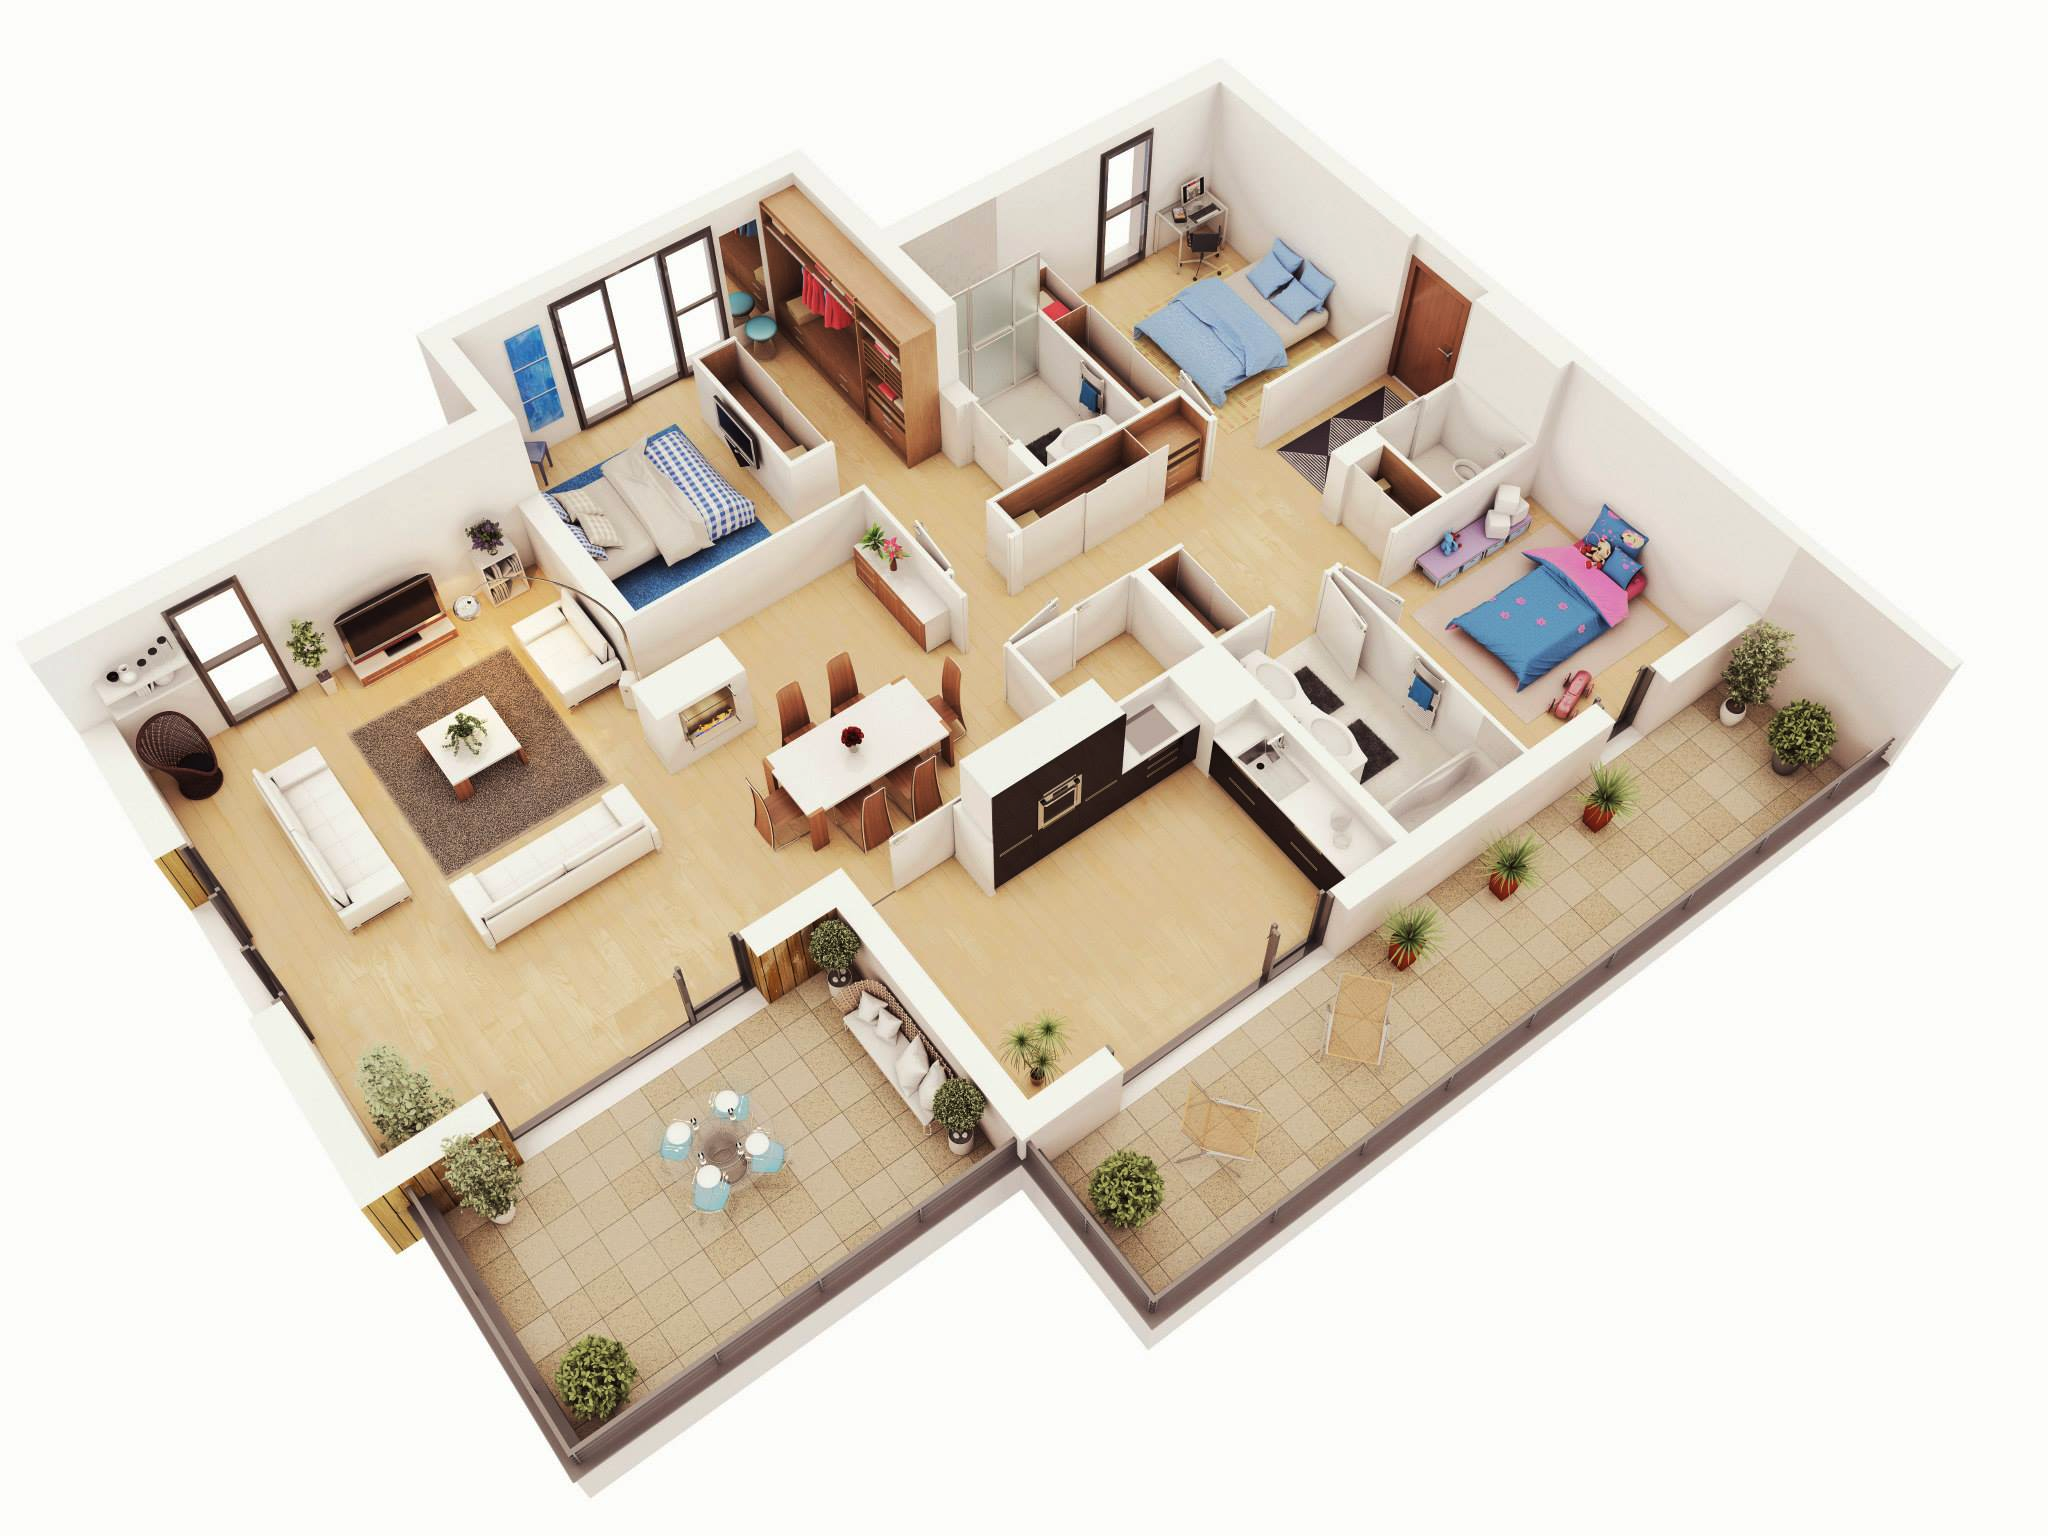 Awe Inspiring 25 More 3 Bedroom 3D Floor Plans Largest Home Design Picture Inspirations Pitcheantrous